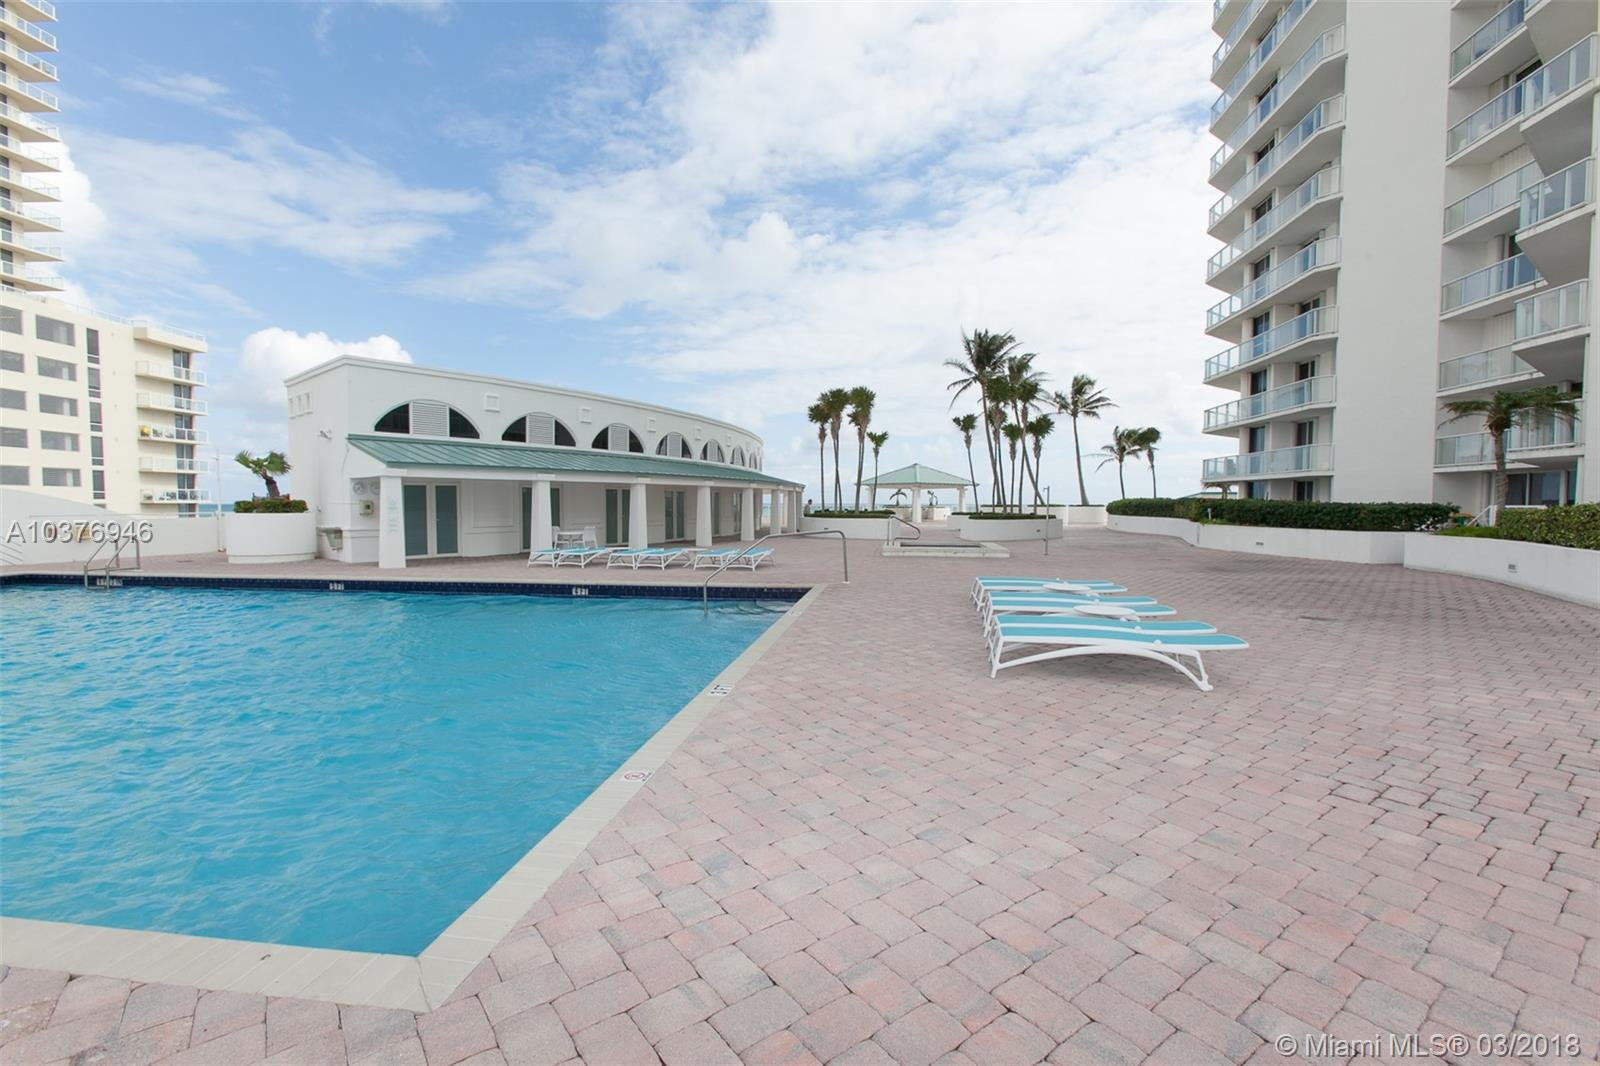 16485 Collins Ave. #1232, Sunny Isles Beach, FL 33160